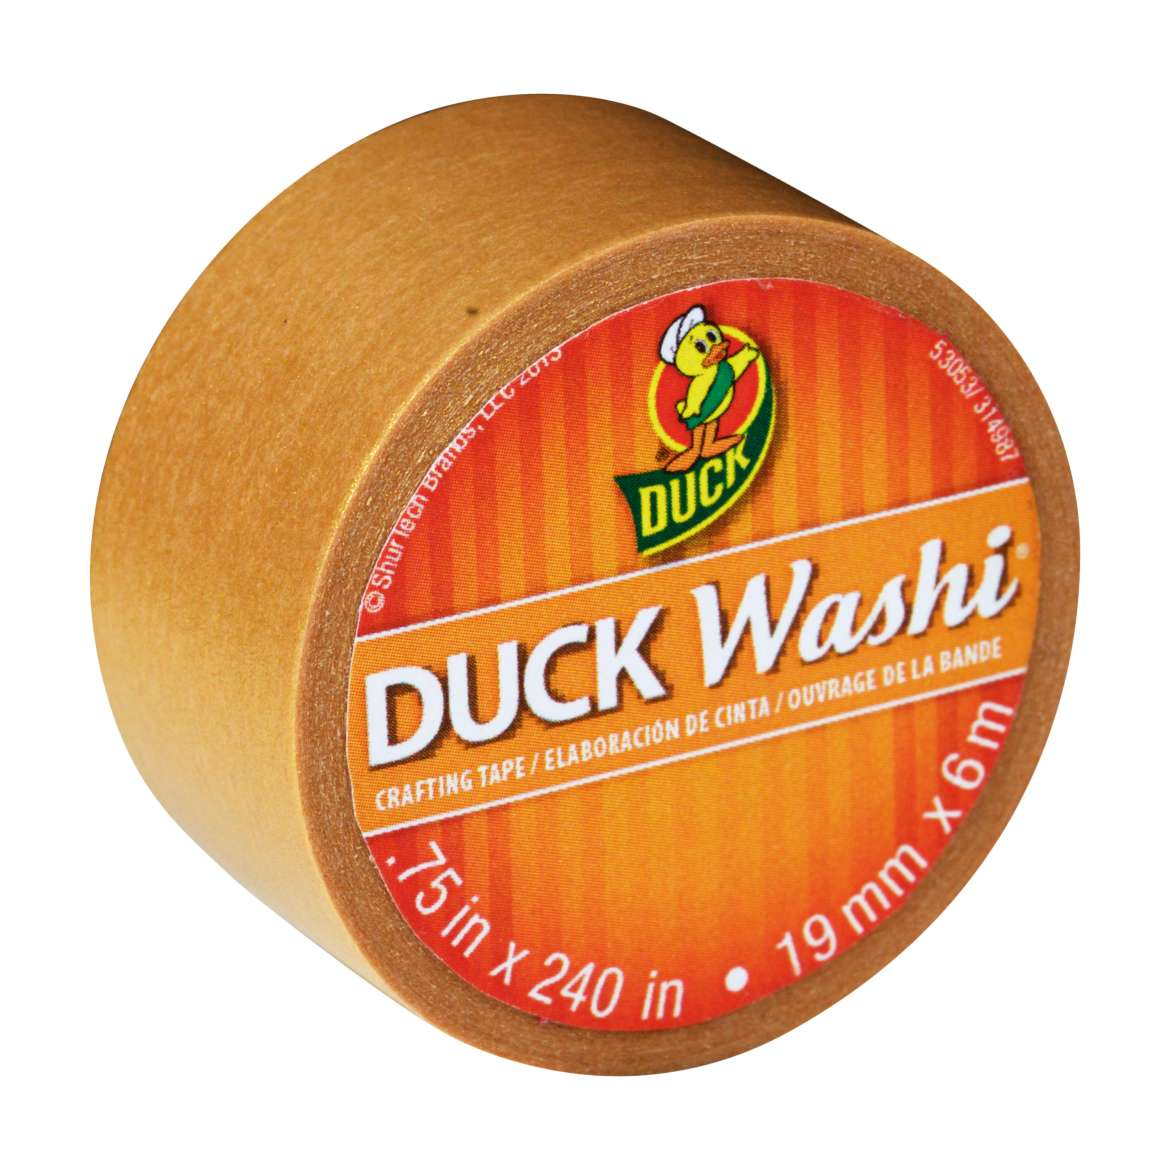 Duck Washi® Crafting Tape - Gold, .75 in. x 240 in. Image